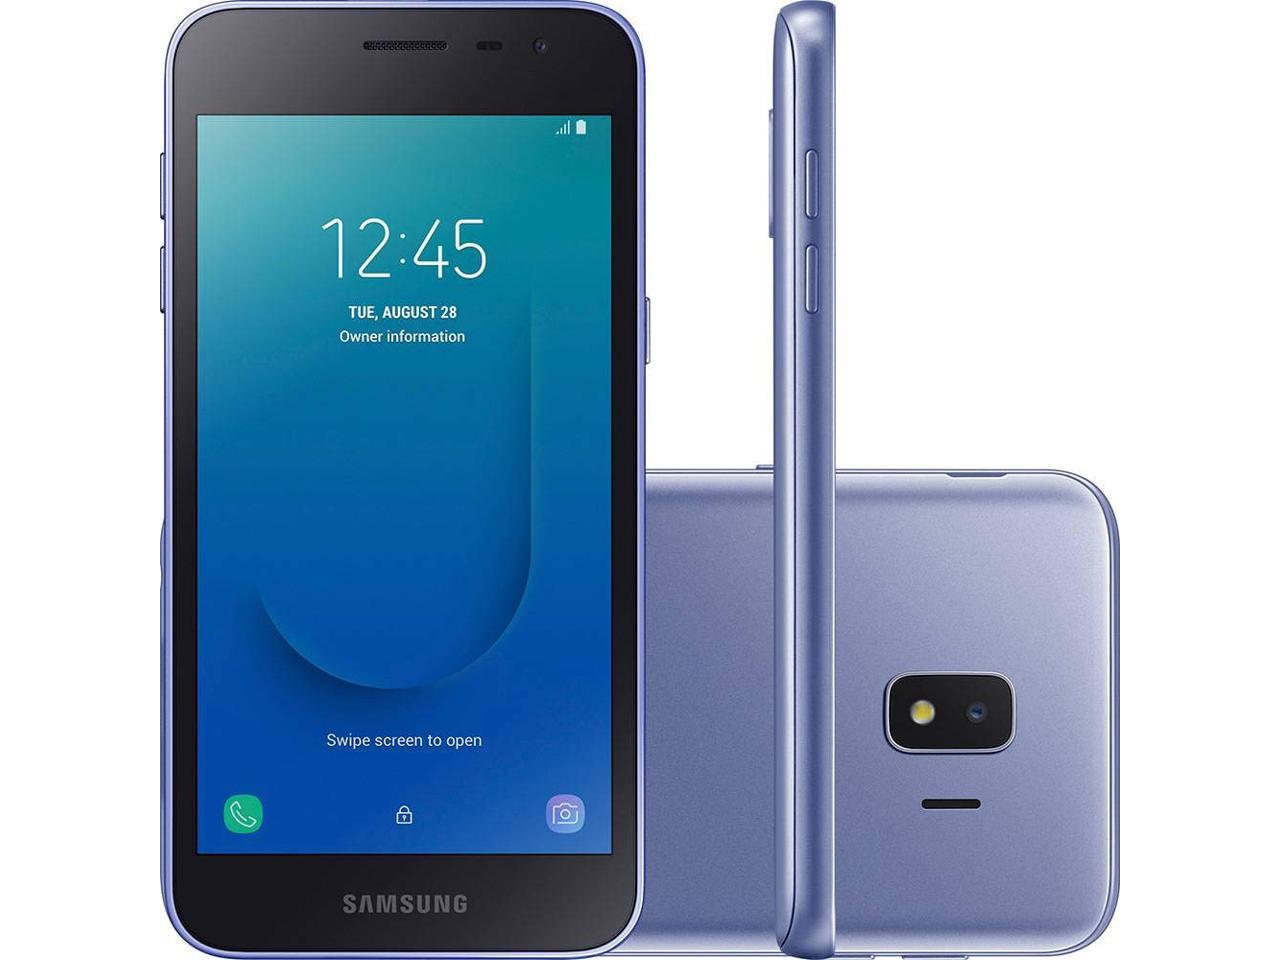 Samsung Galaxy J2 Core 2018 International Edition